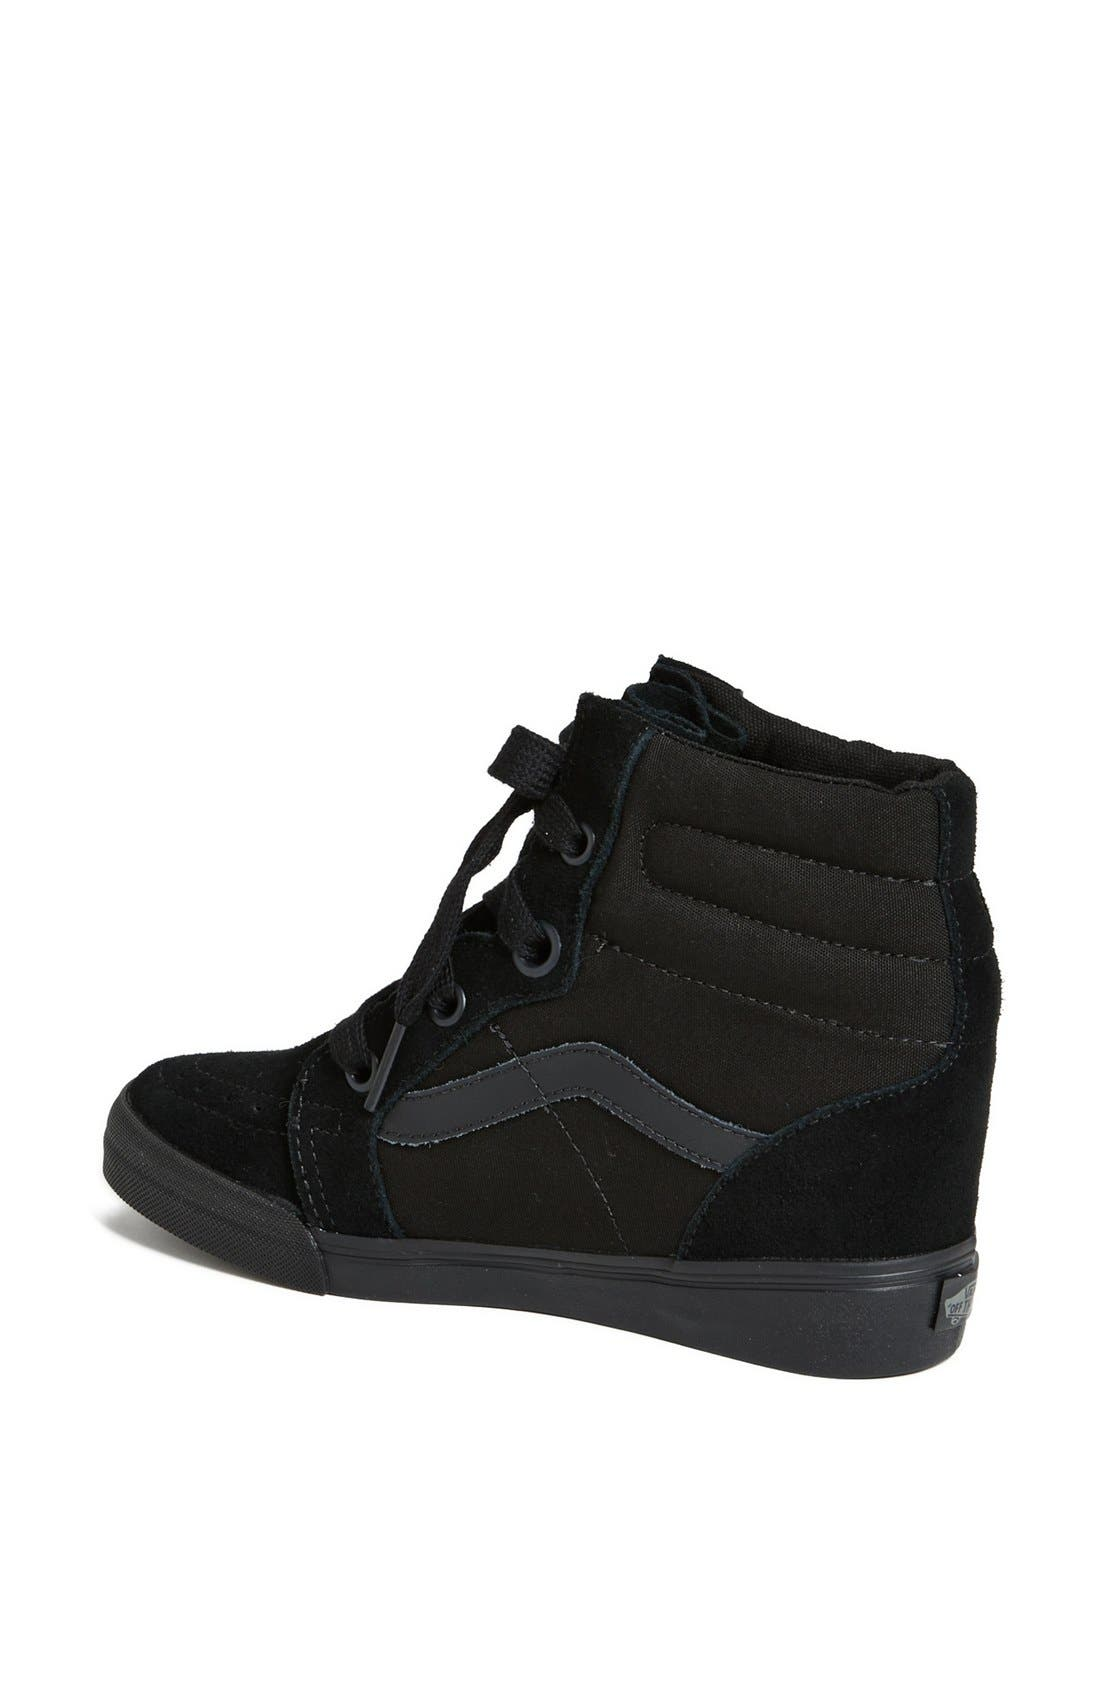 Alternate Image 2  - Vans 'Sk8 Hi' Wedge Sneaker (Women)